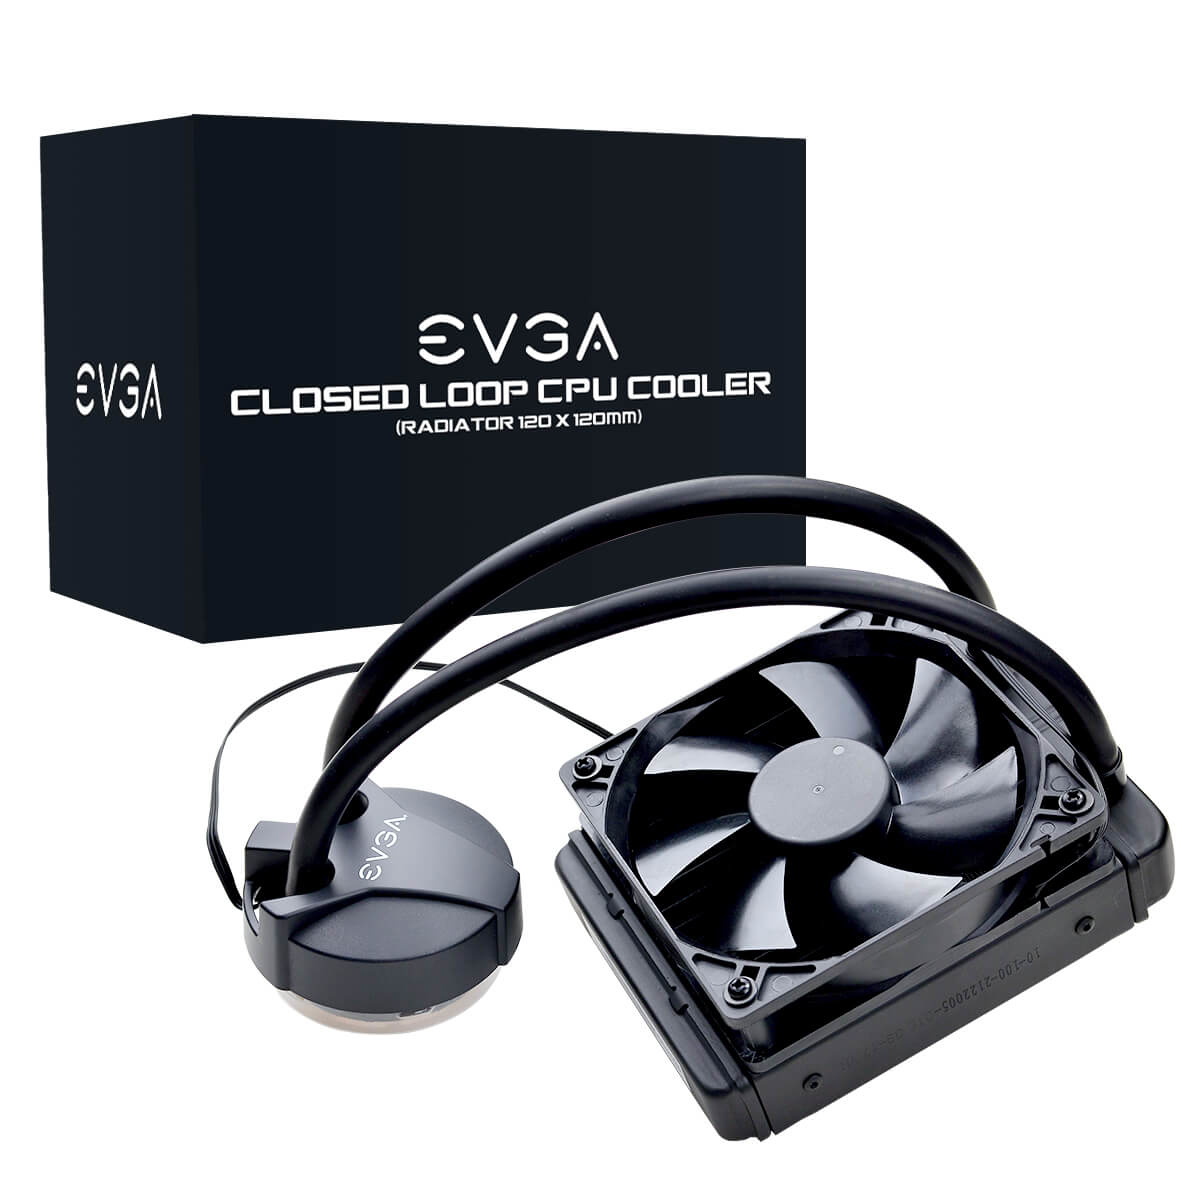 EVGA 400-HY-CL11-V1 liquid cooling Processor